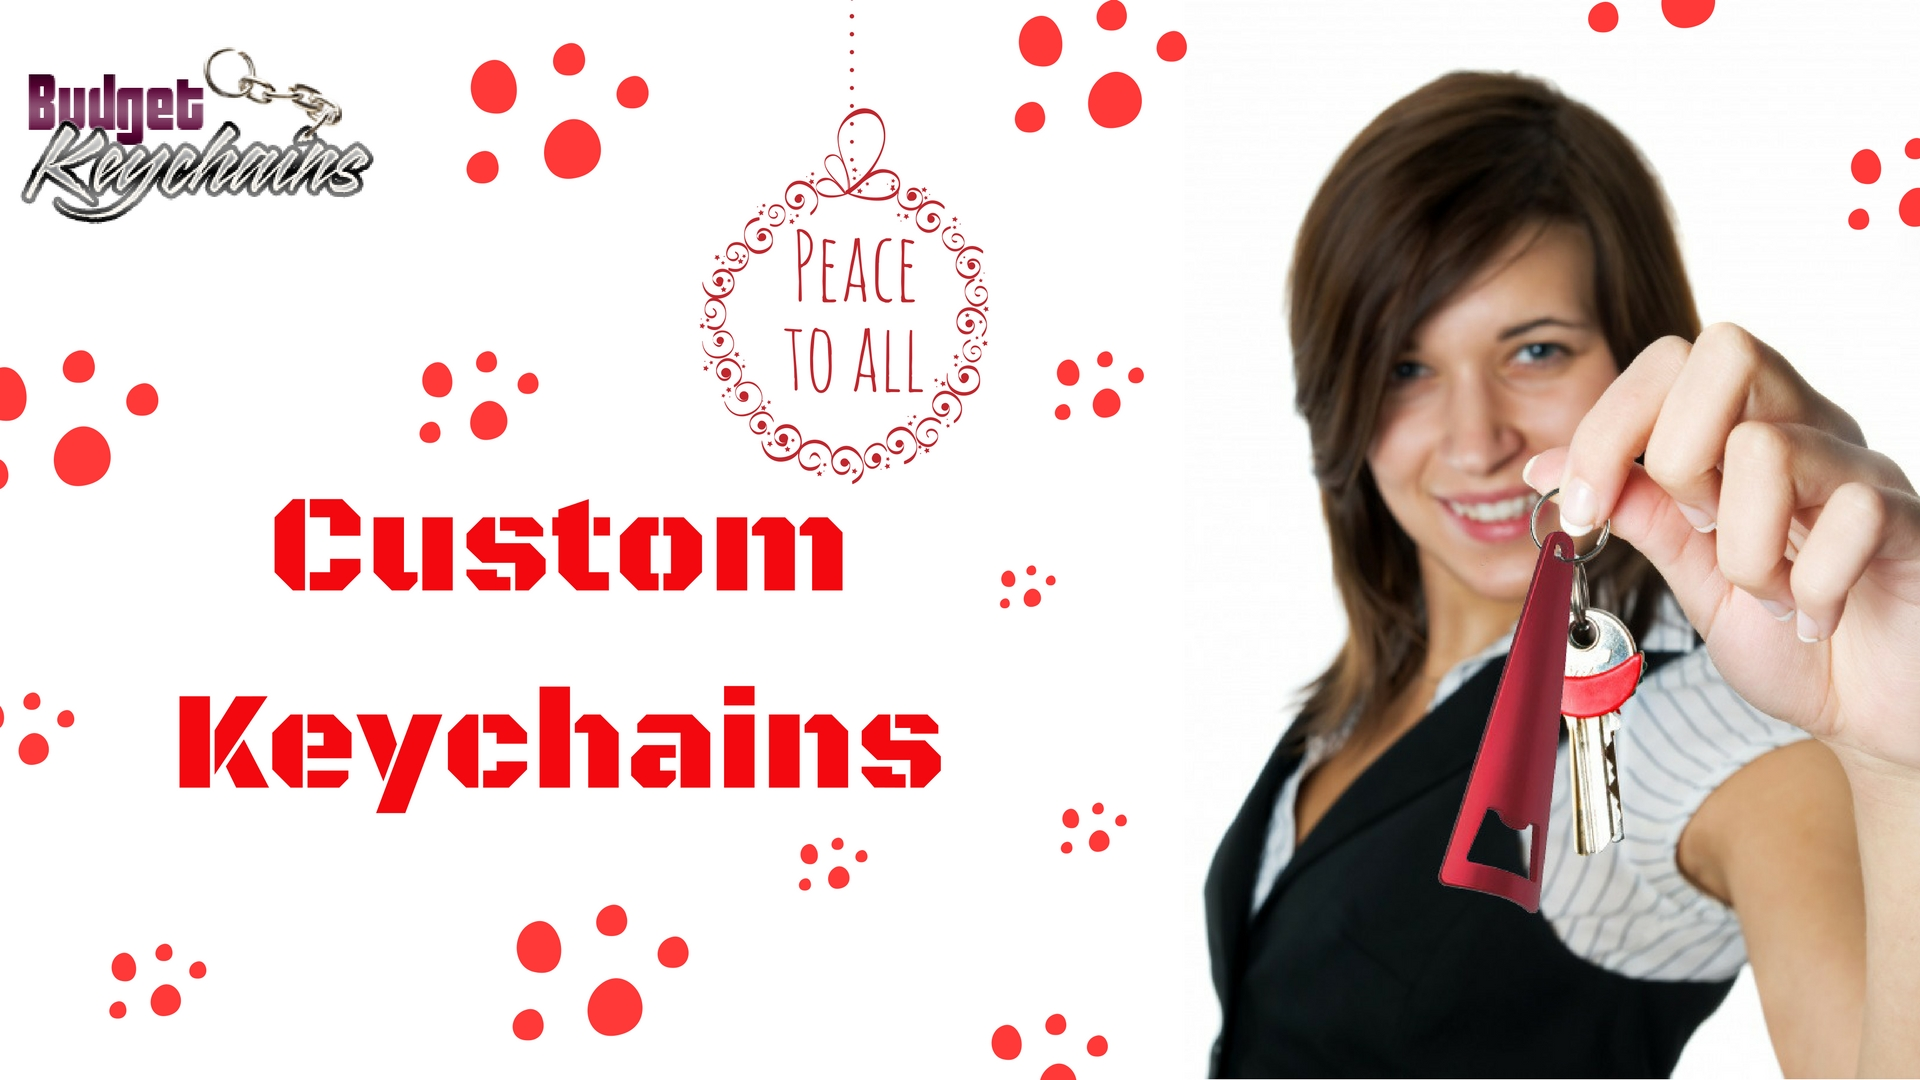 christmas-promotion-custom-keychains